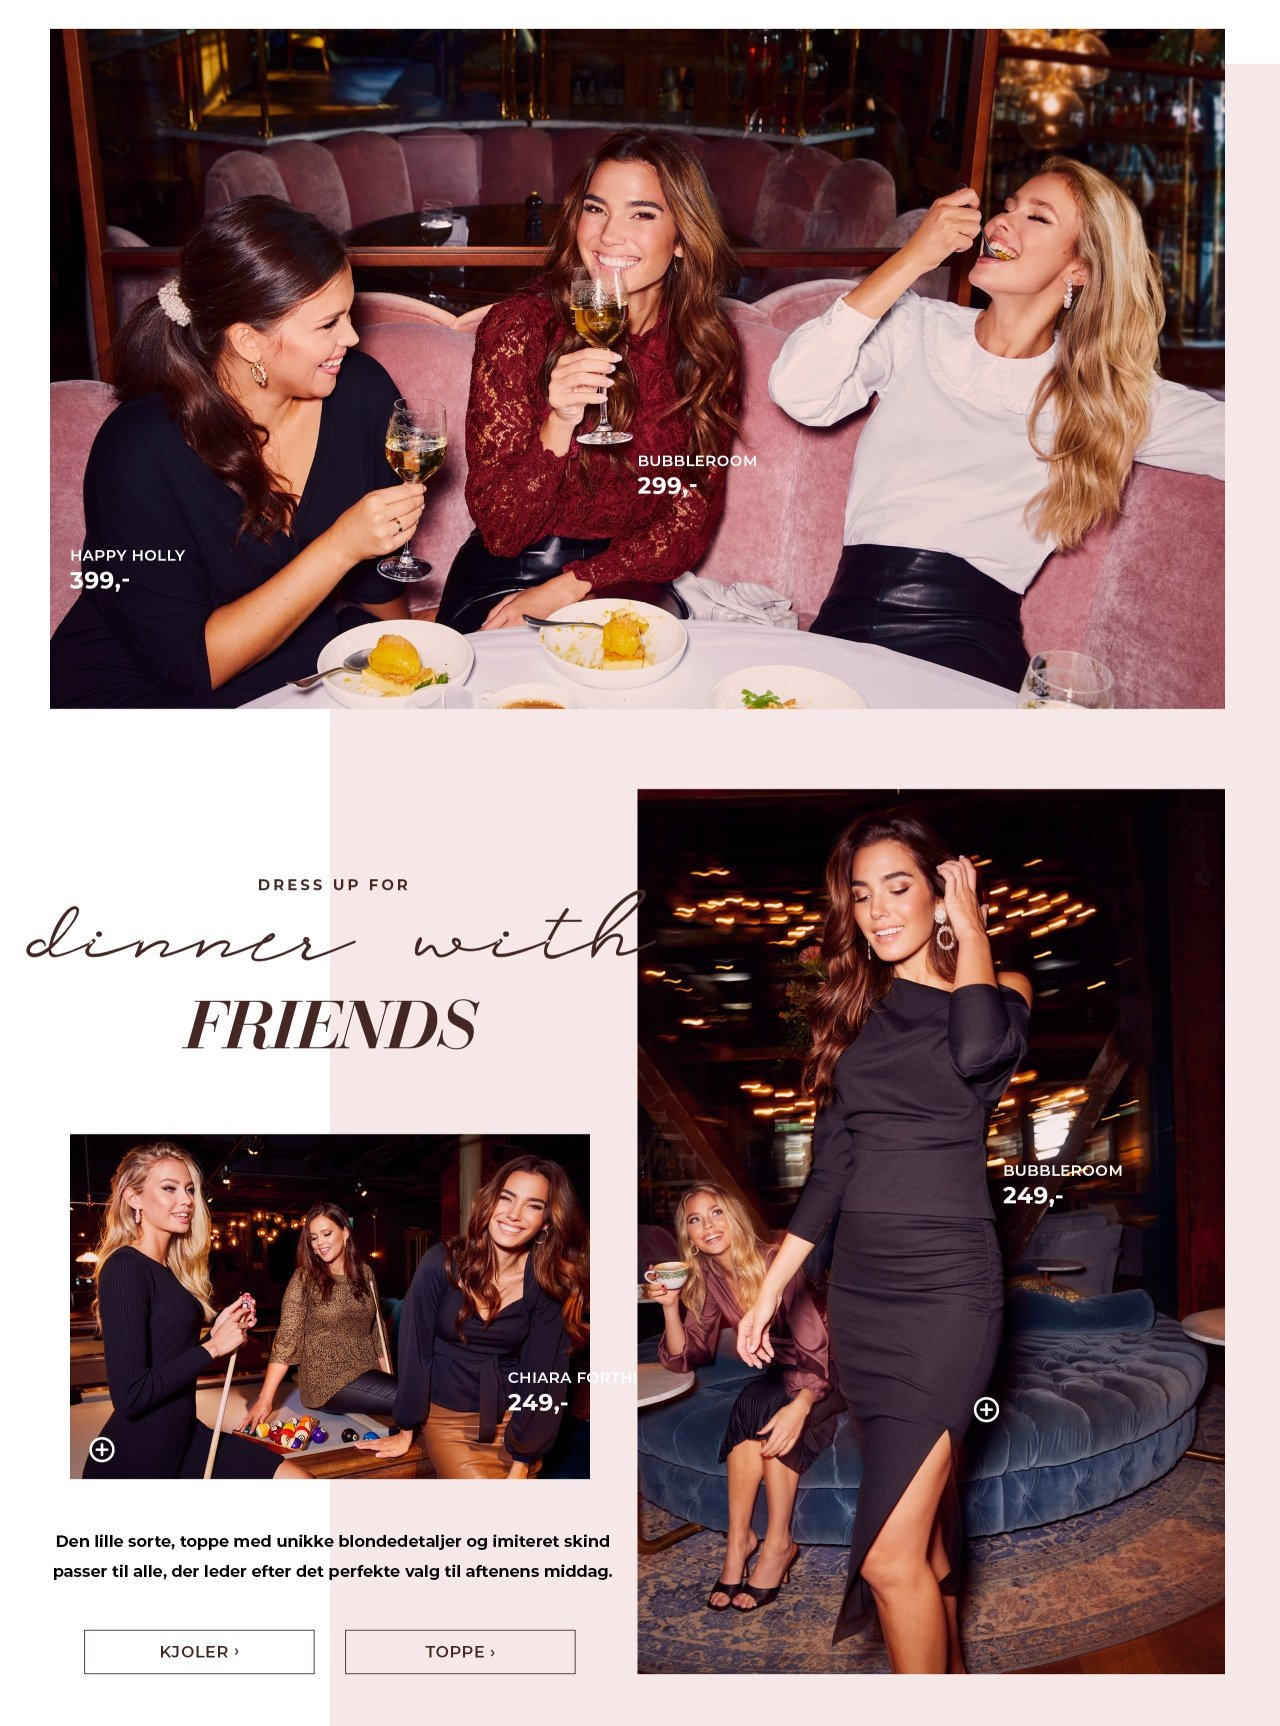 Dress up for dinner with friends - Shop her